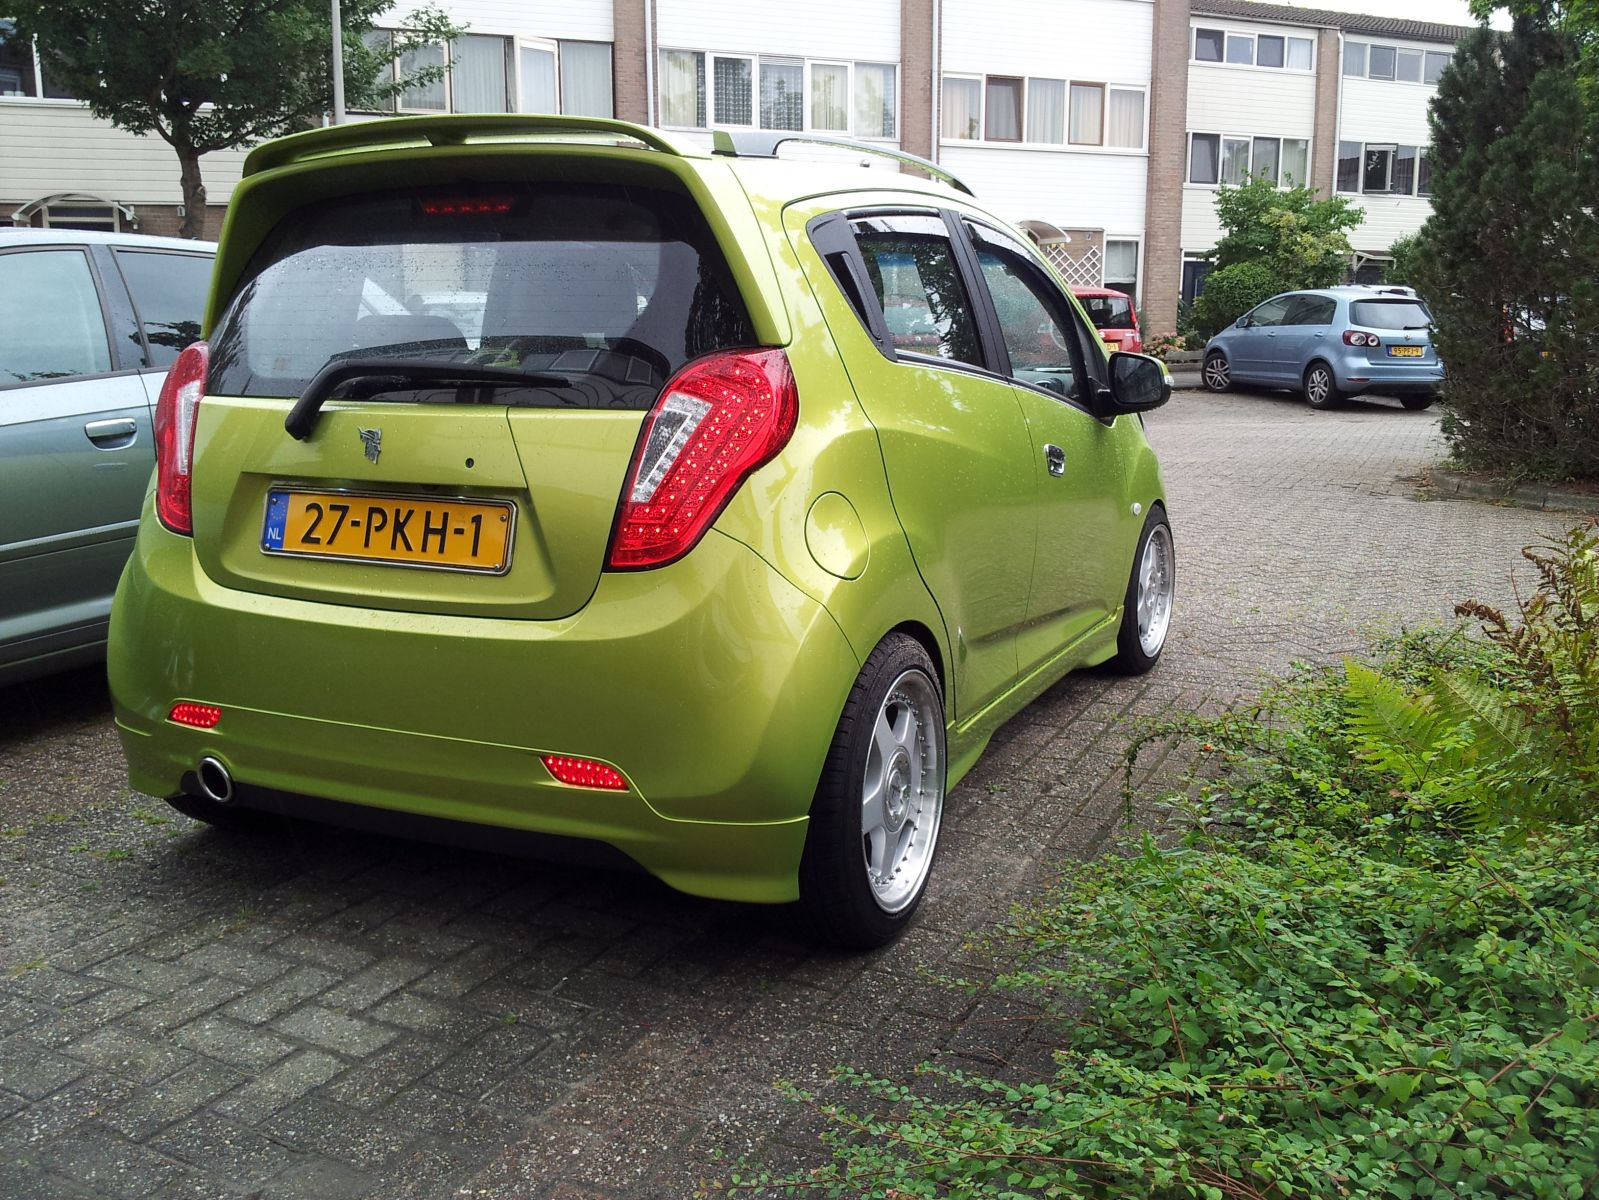 Chevy Spark Spoiler Free Download Chevrolet Spoilers Side Skirts And Rear Bumper 13 14 09 2013